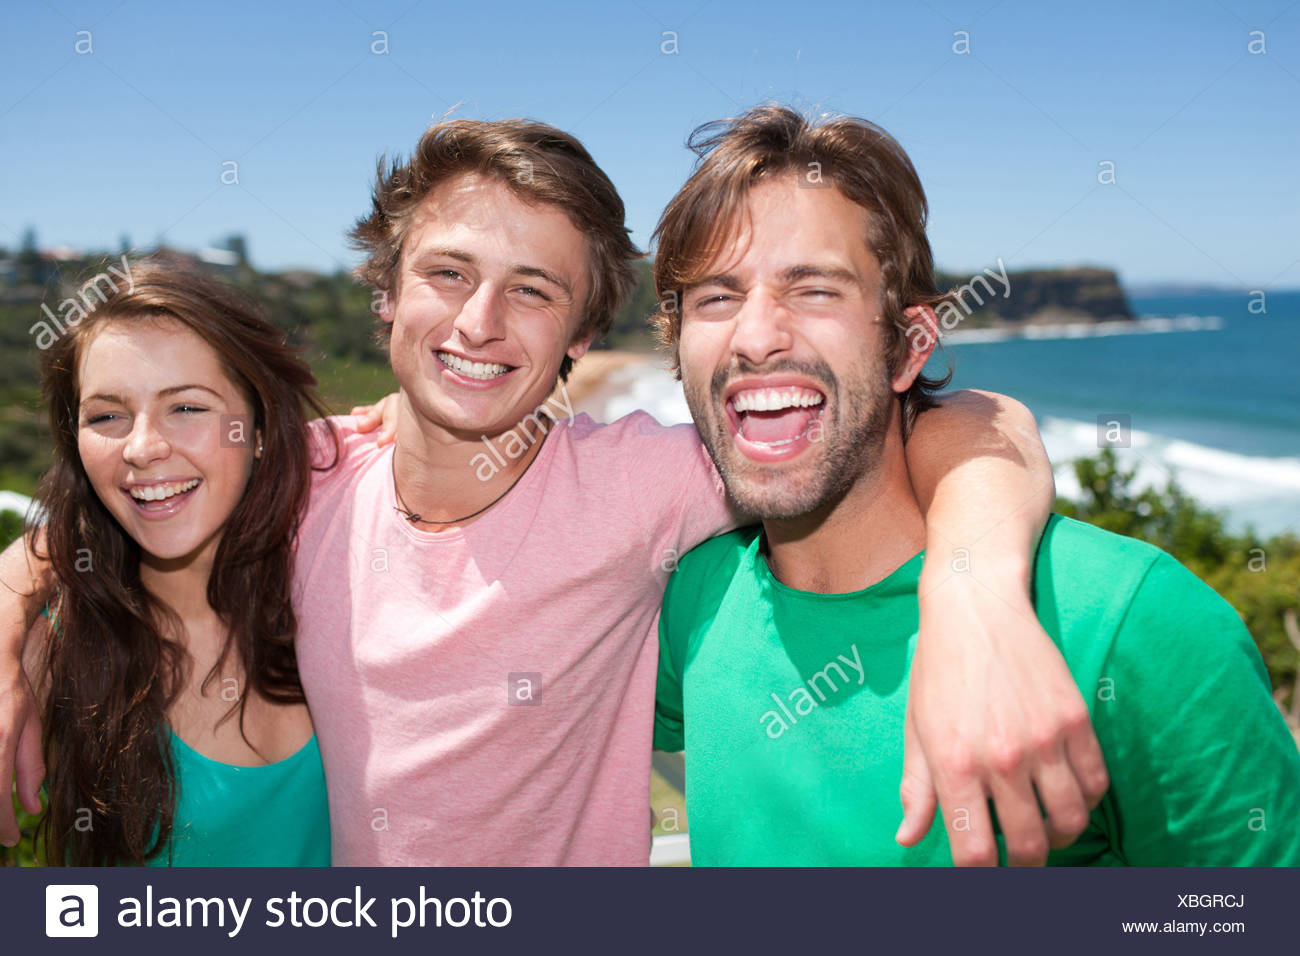 Friends hugging and smiling - Stock Image